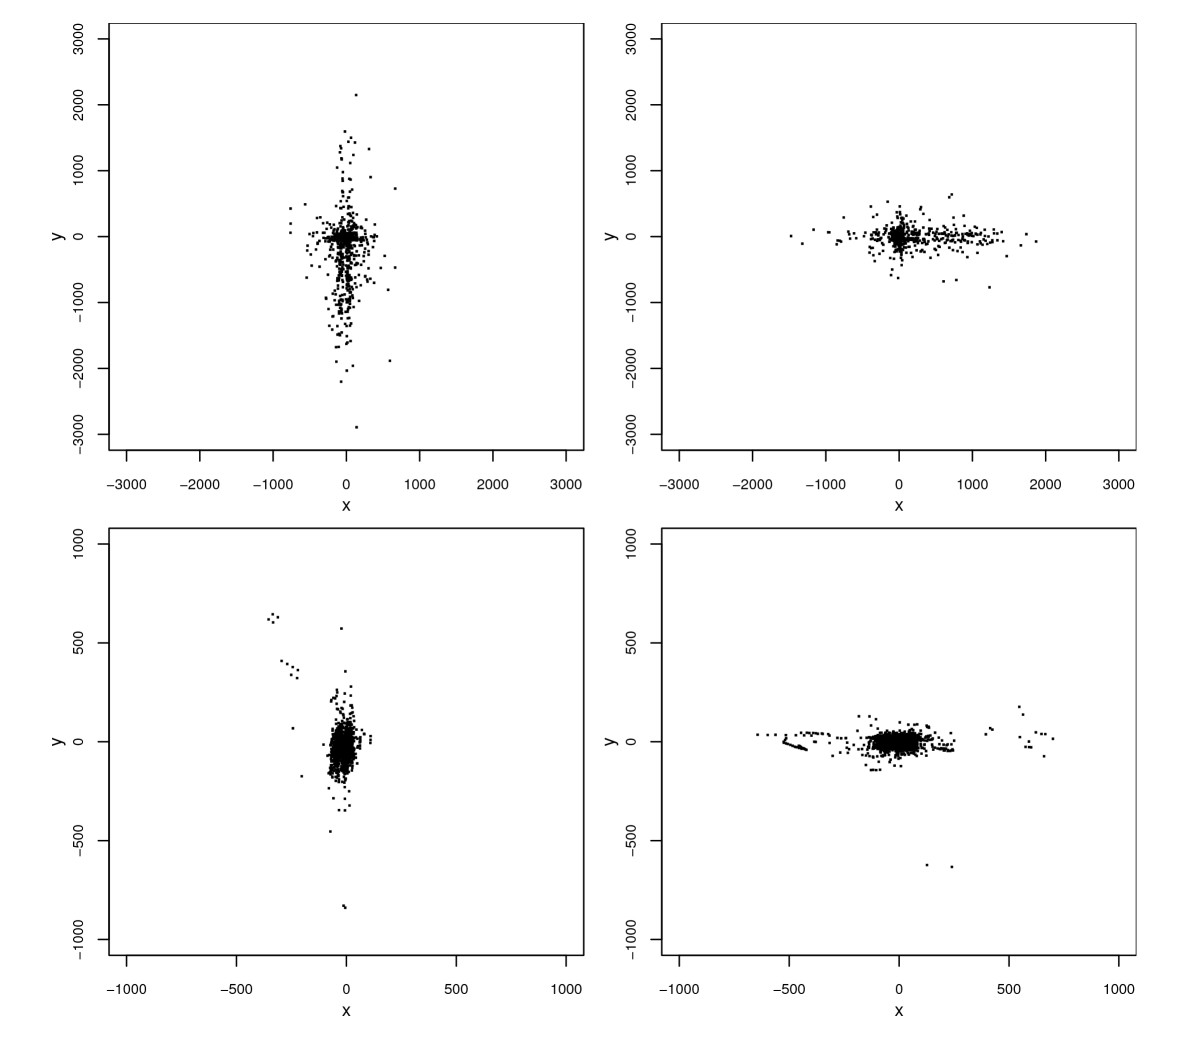 http://static-content.springer.com/image/art%3A10.1186%2F1476-072X-9-10/MediaObjects/12942_2009_Article_343_Fig5_HTML.jpg